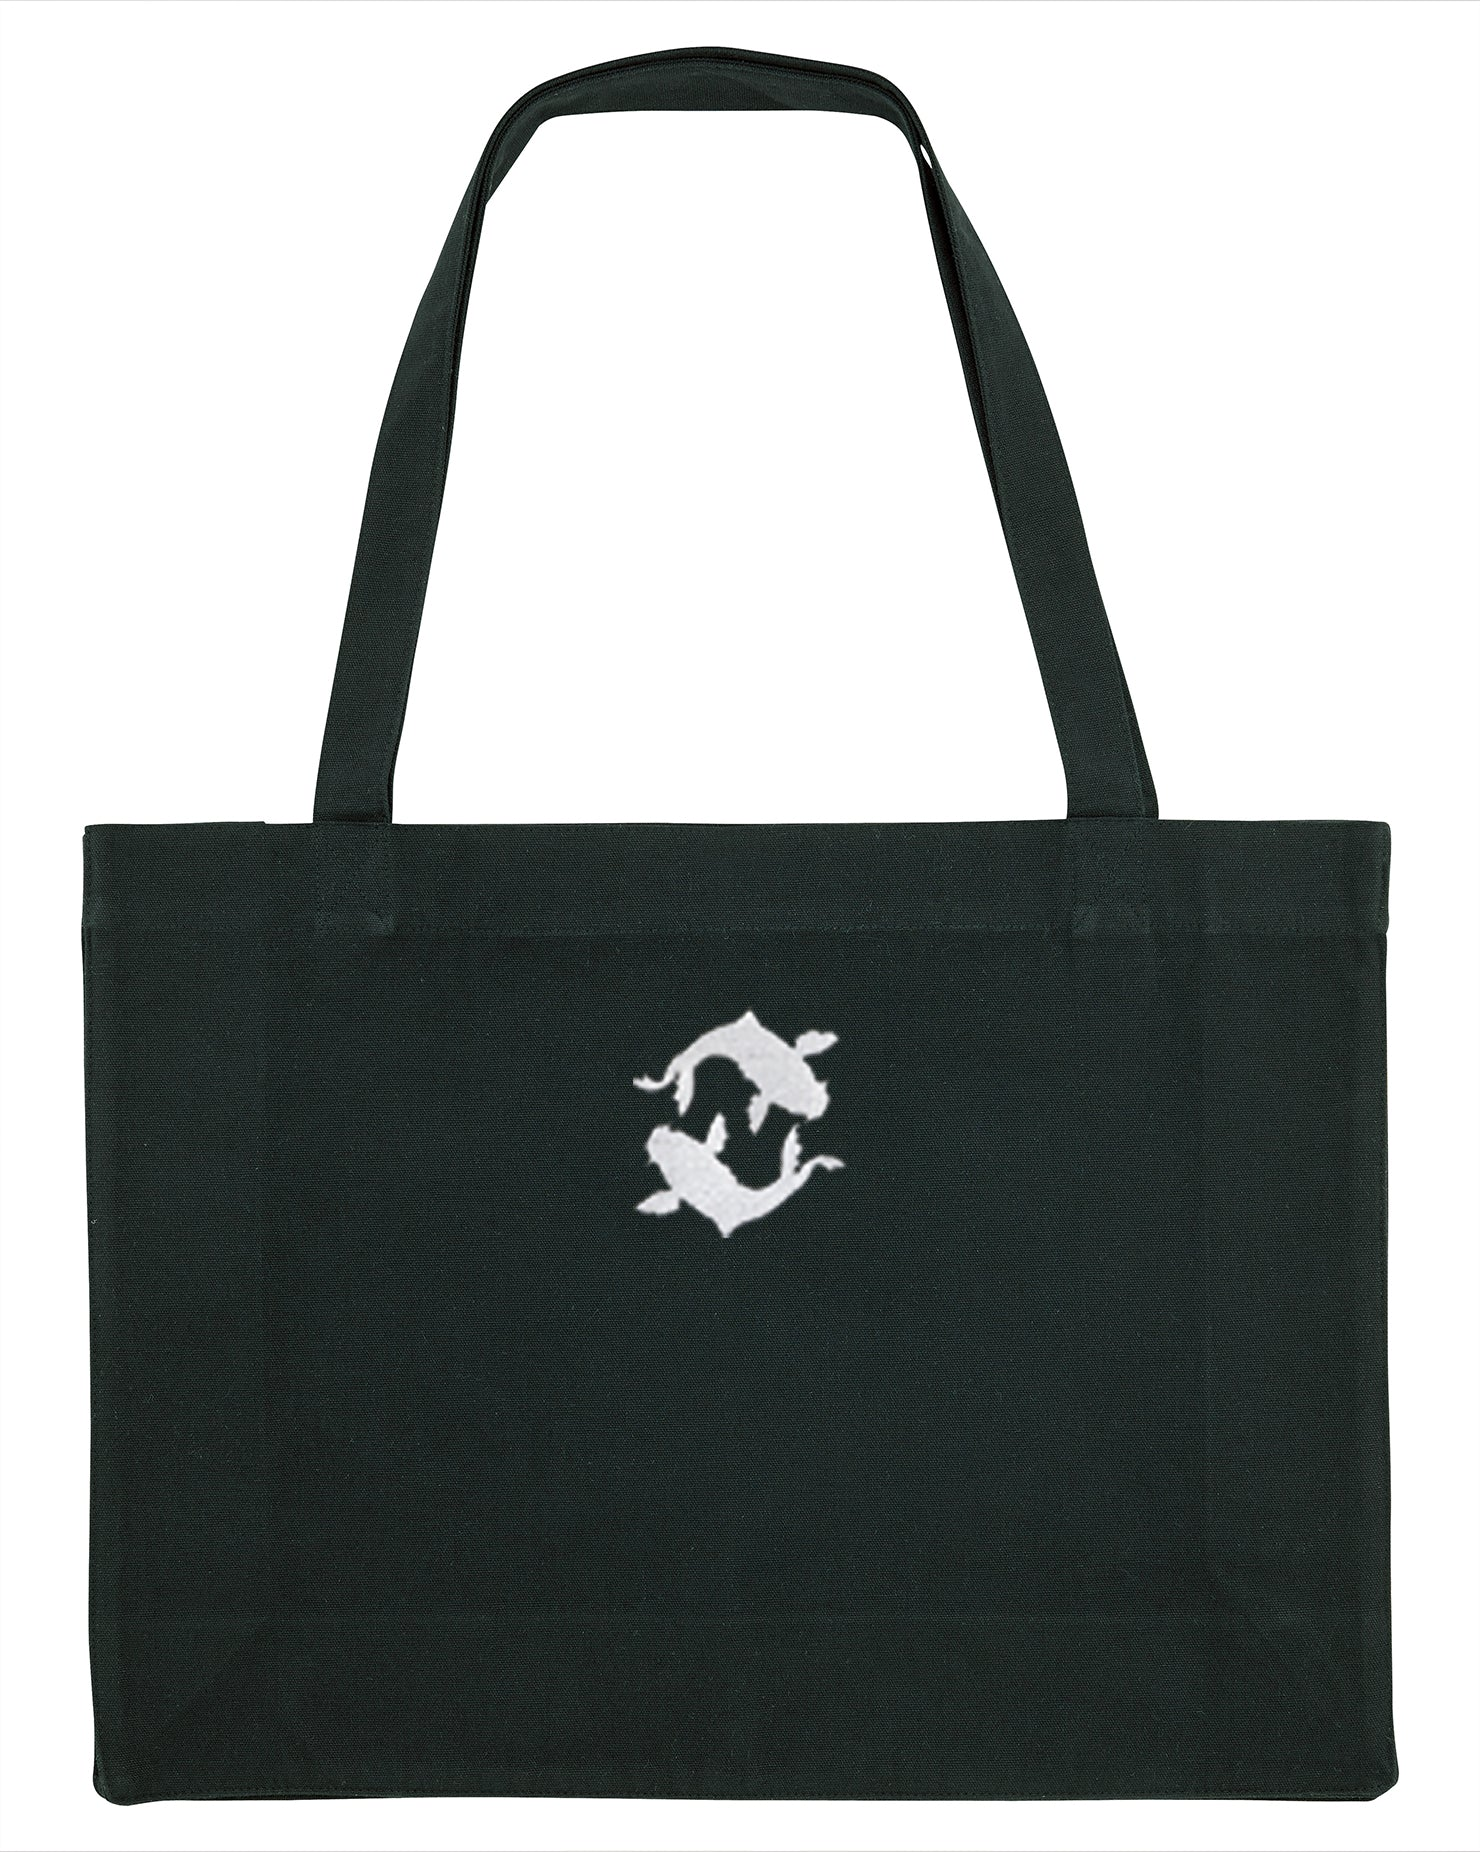 Oversized recycled tote